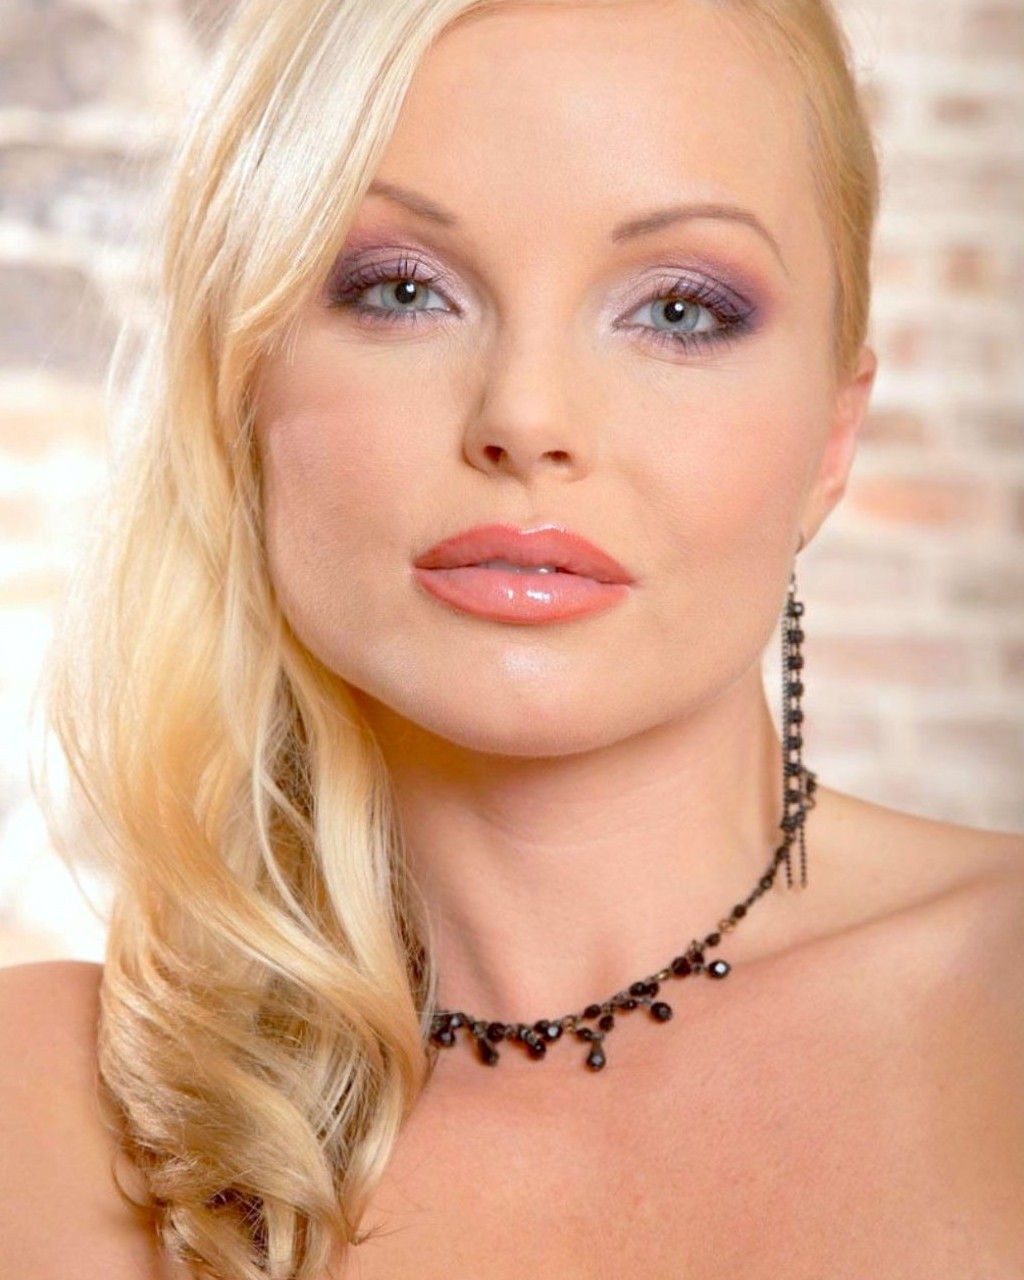 Silvia saint from czech republic